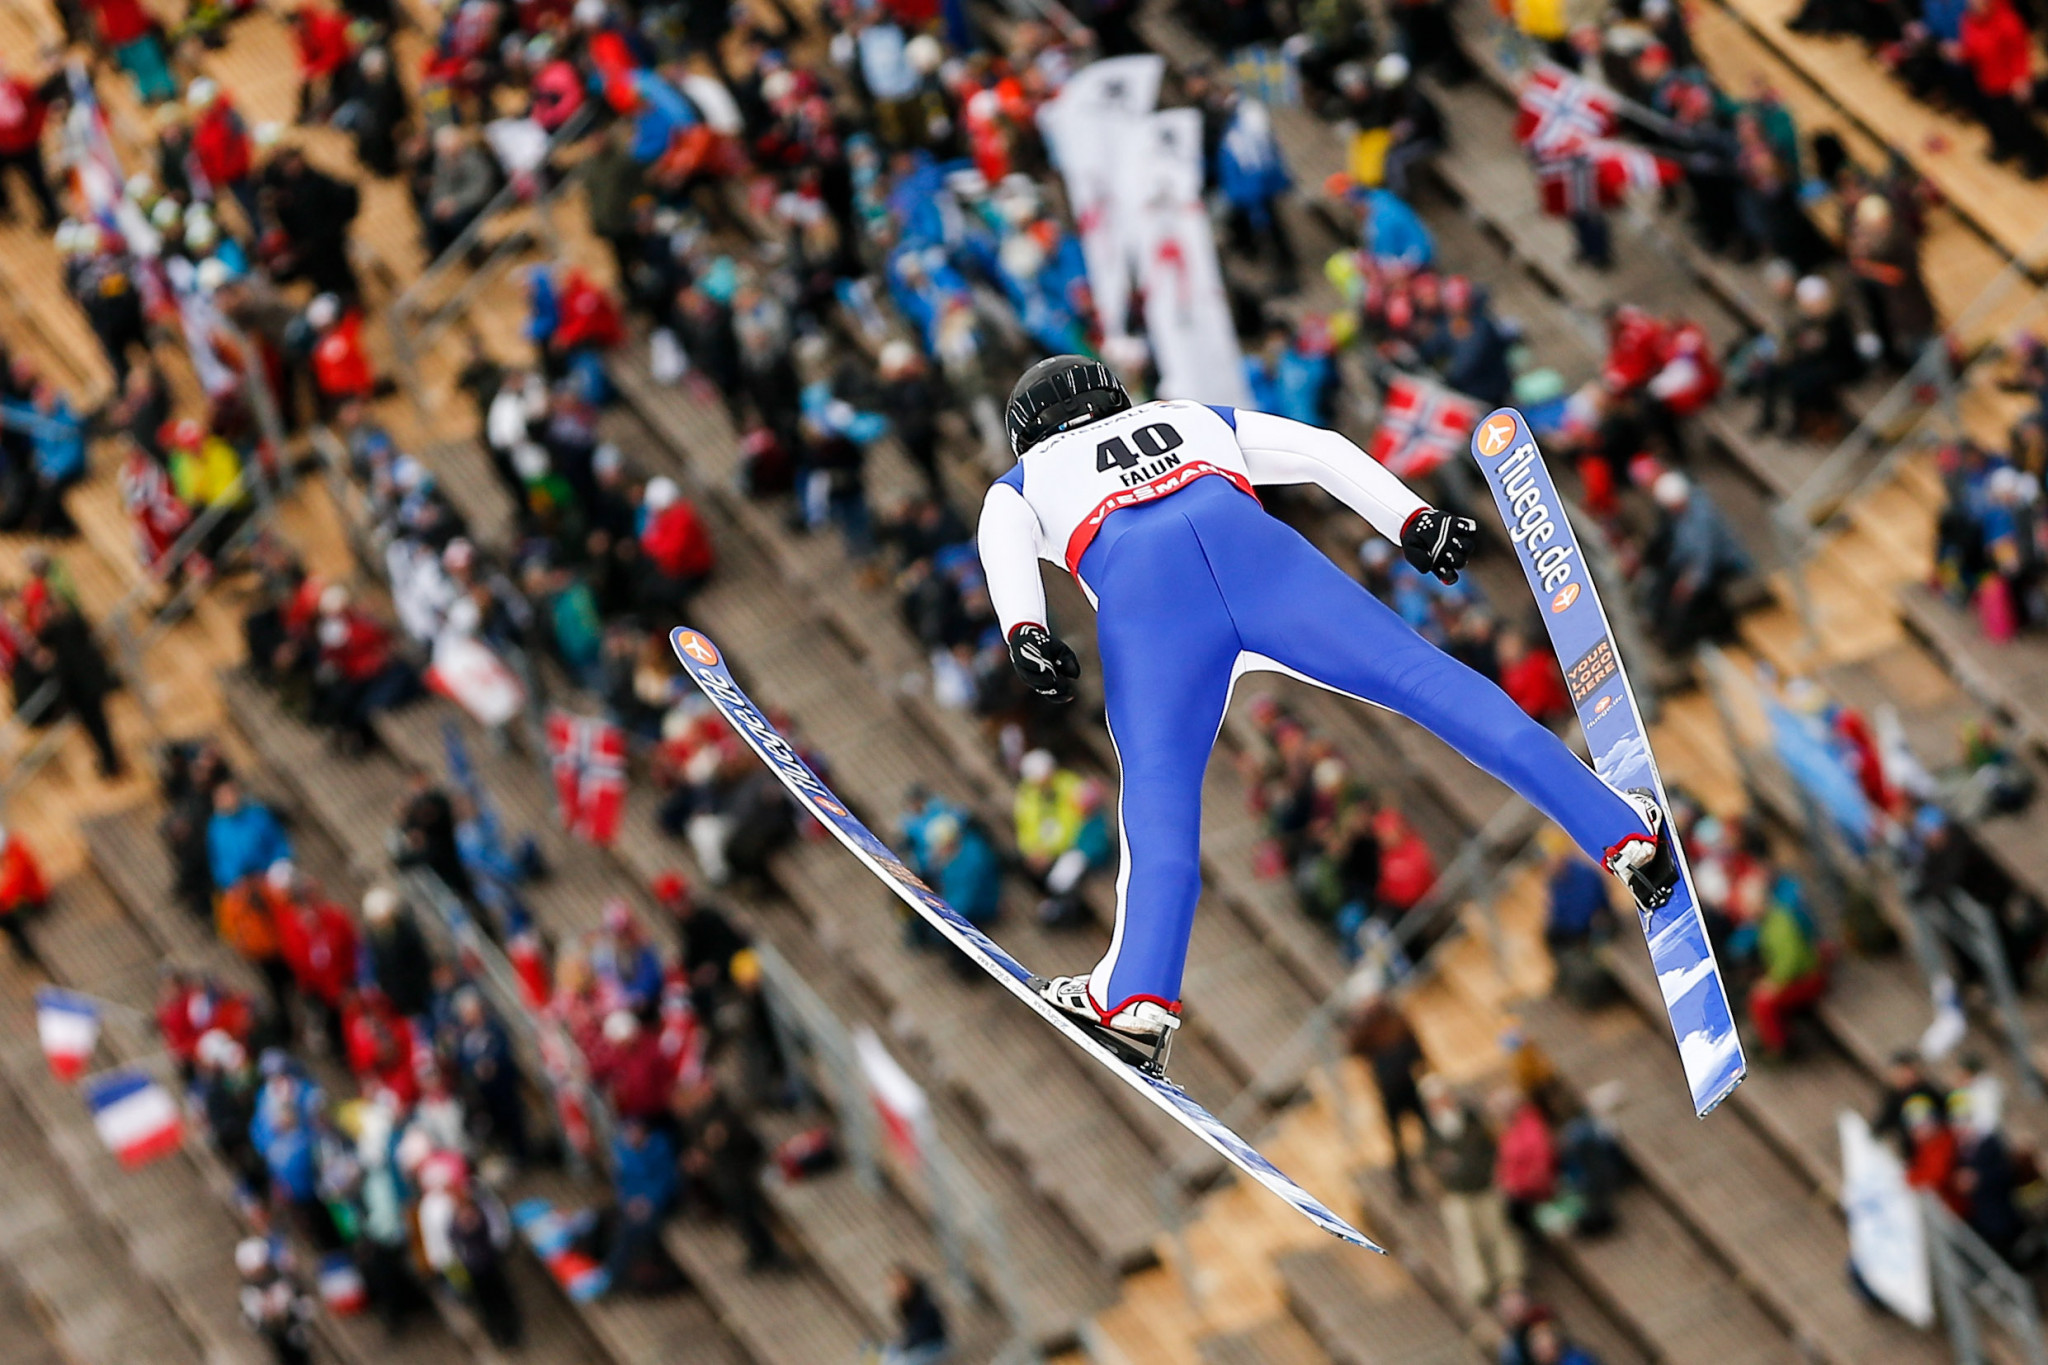 Magnus Moan has won four Olympic medals in his career ©Getty Images